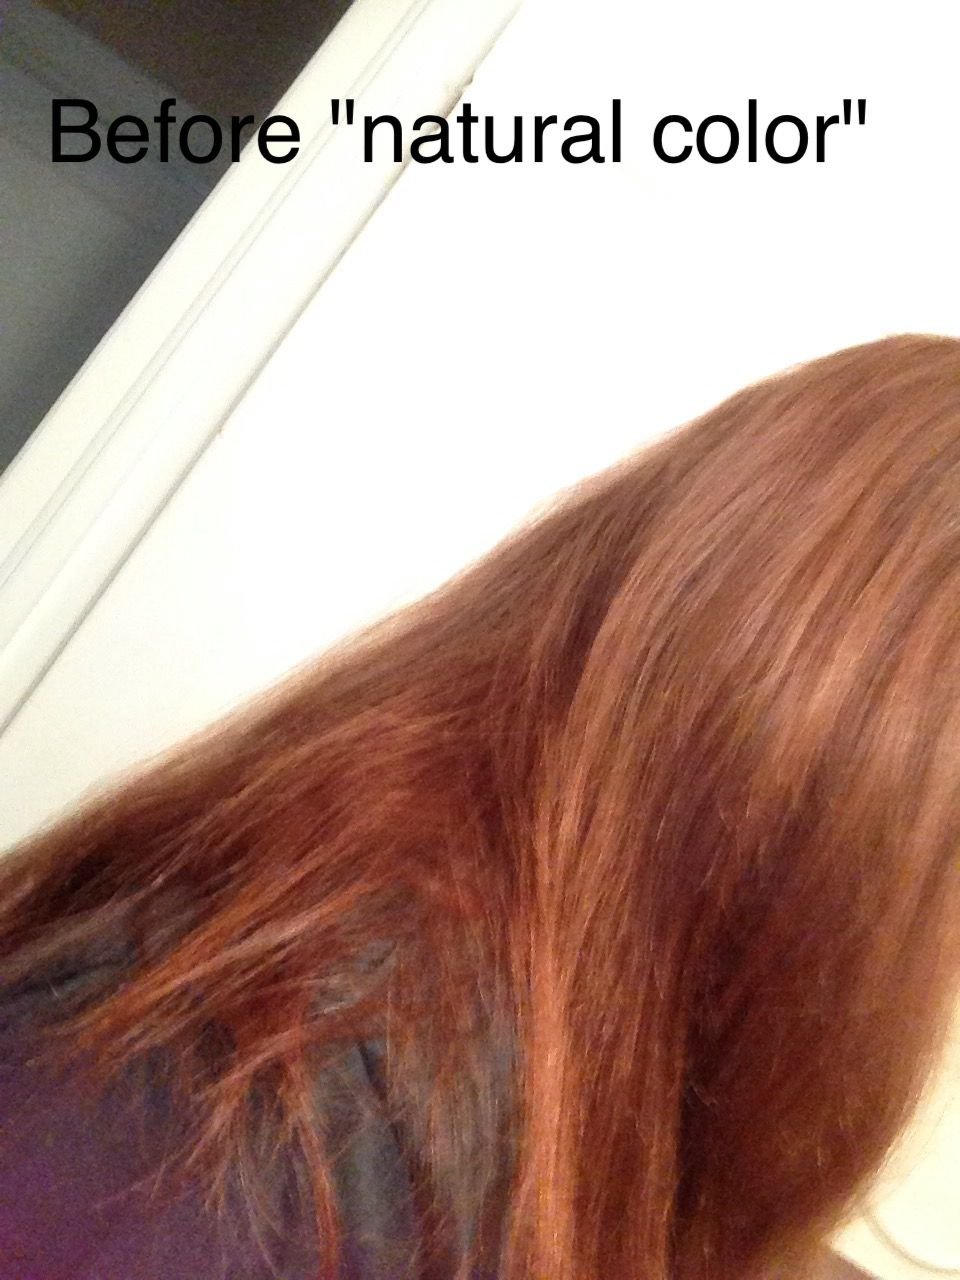 Loreal Feria Power Reds Reviews Photos Page 1 Filter Reviewer Age